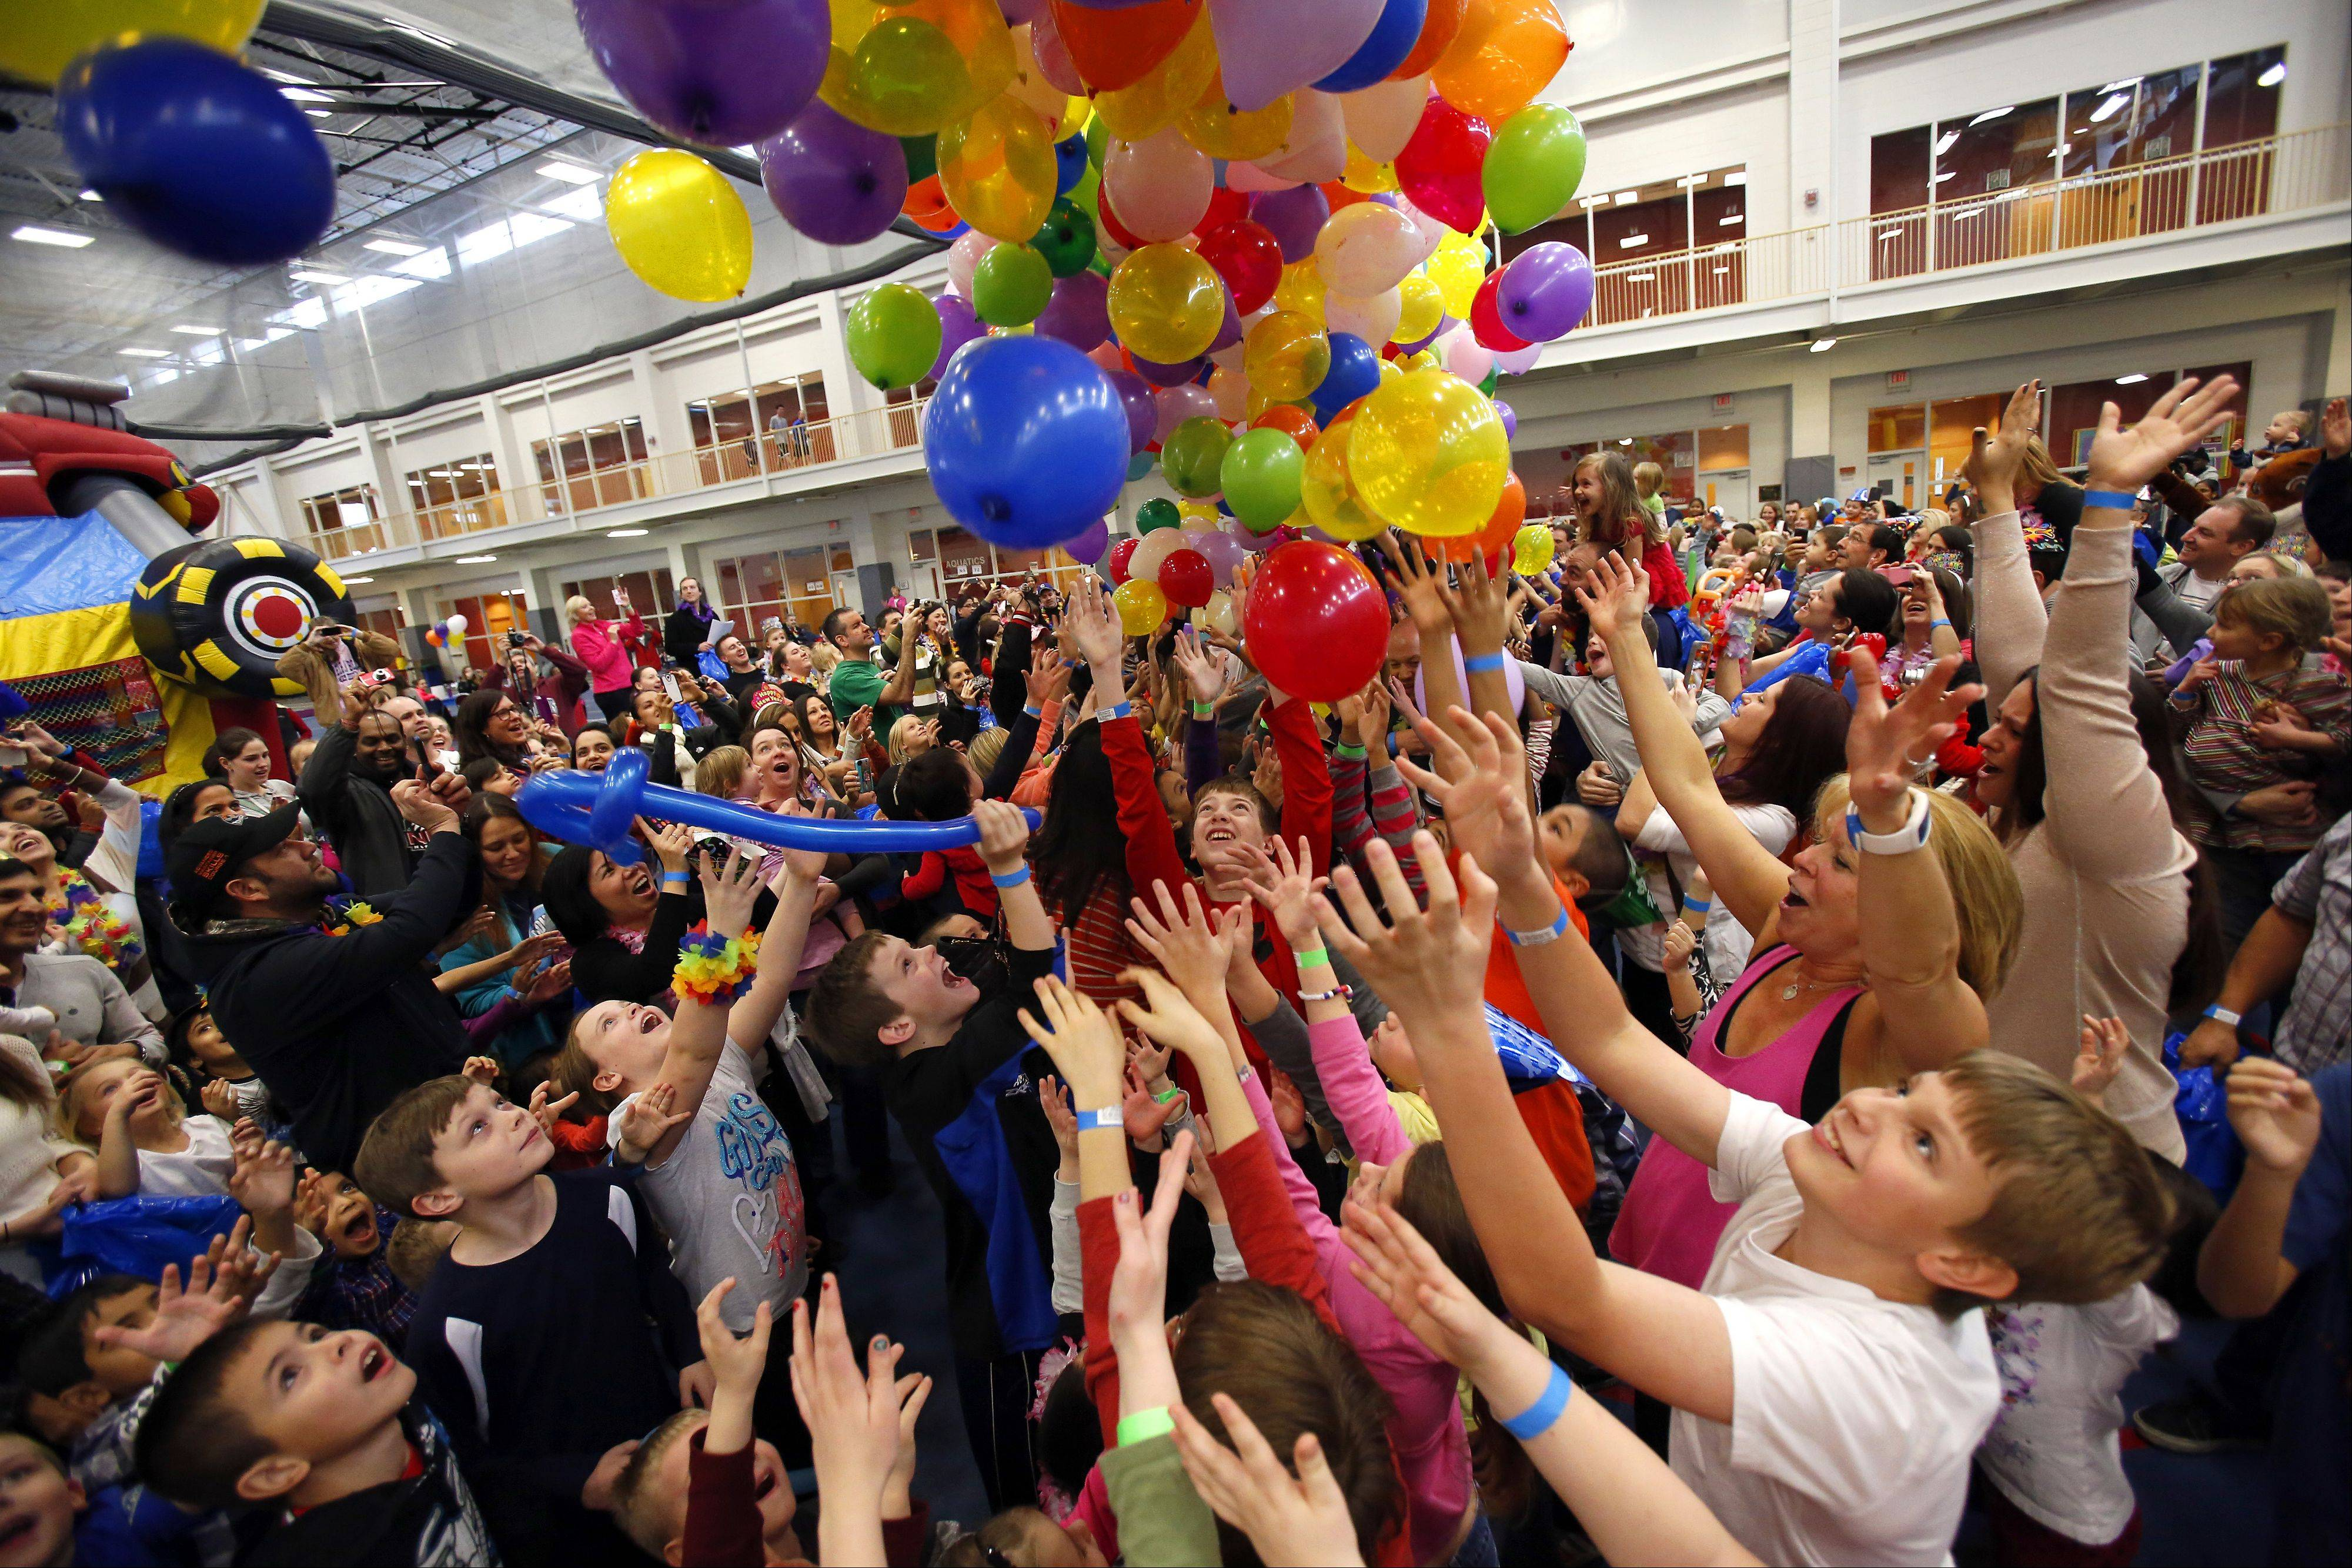 The countdown to noon ended in a balloon drop during the Family New Year's Eve Party Tuesday at Vaughan Athletic Center in Aurora.